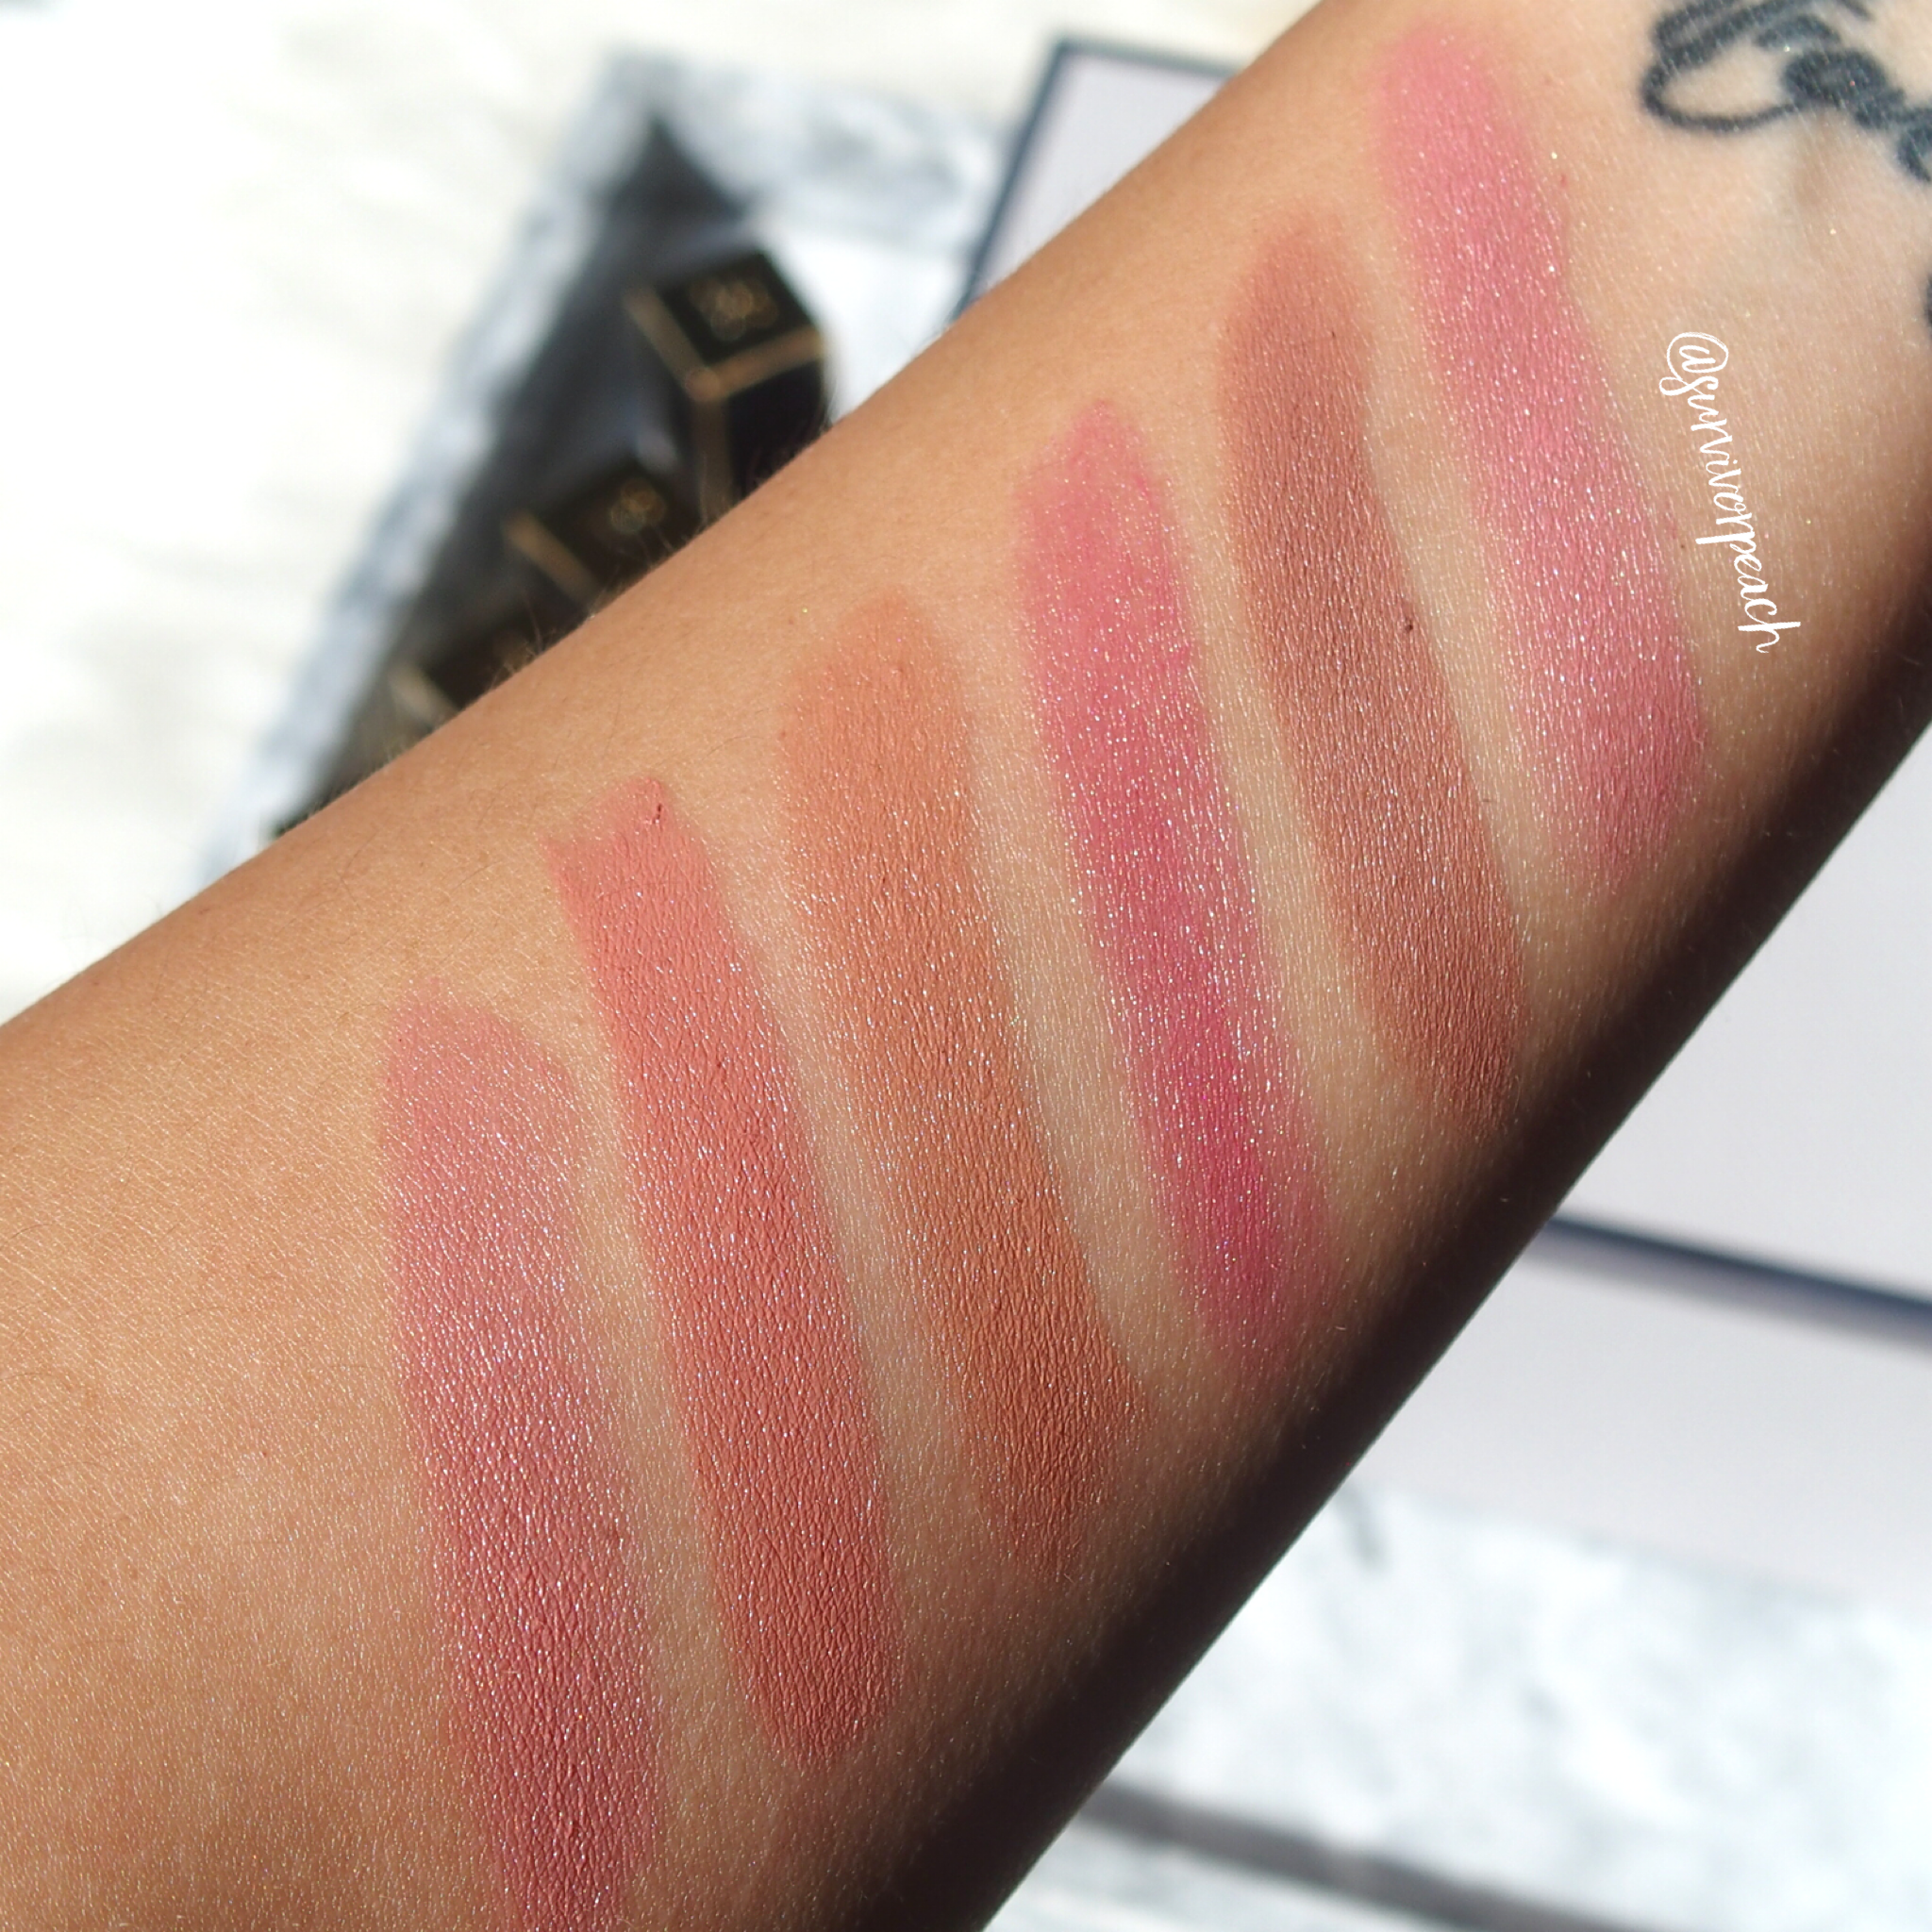 Swatches of the Tom Ford Lips and Boys in Flynn, Evan, Ansel, Bradley, Rover, Bryan